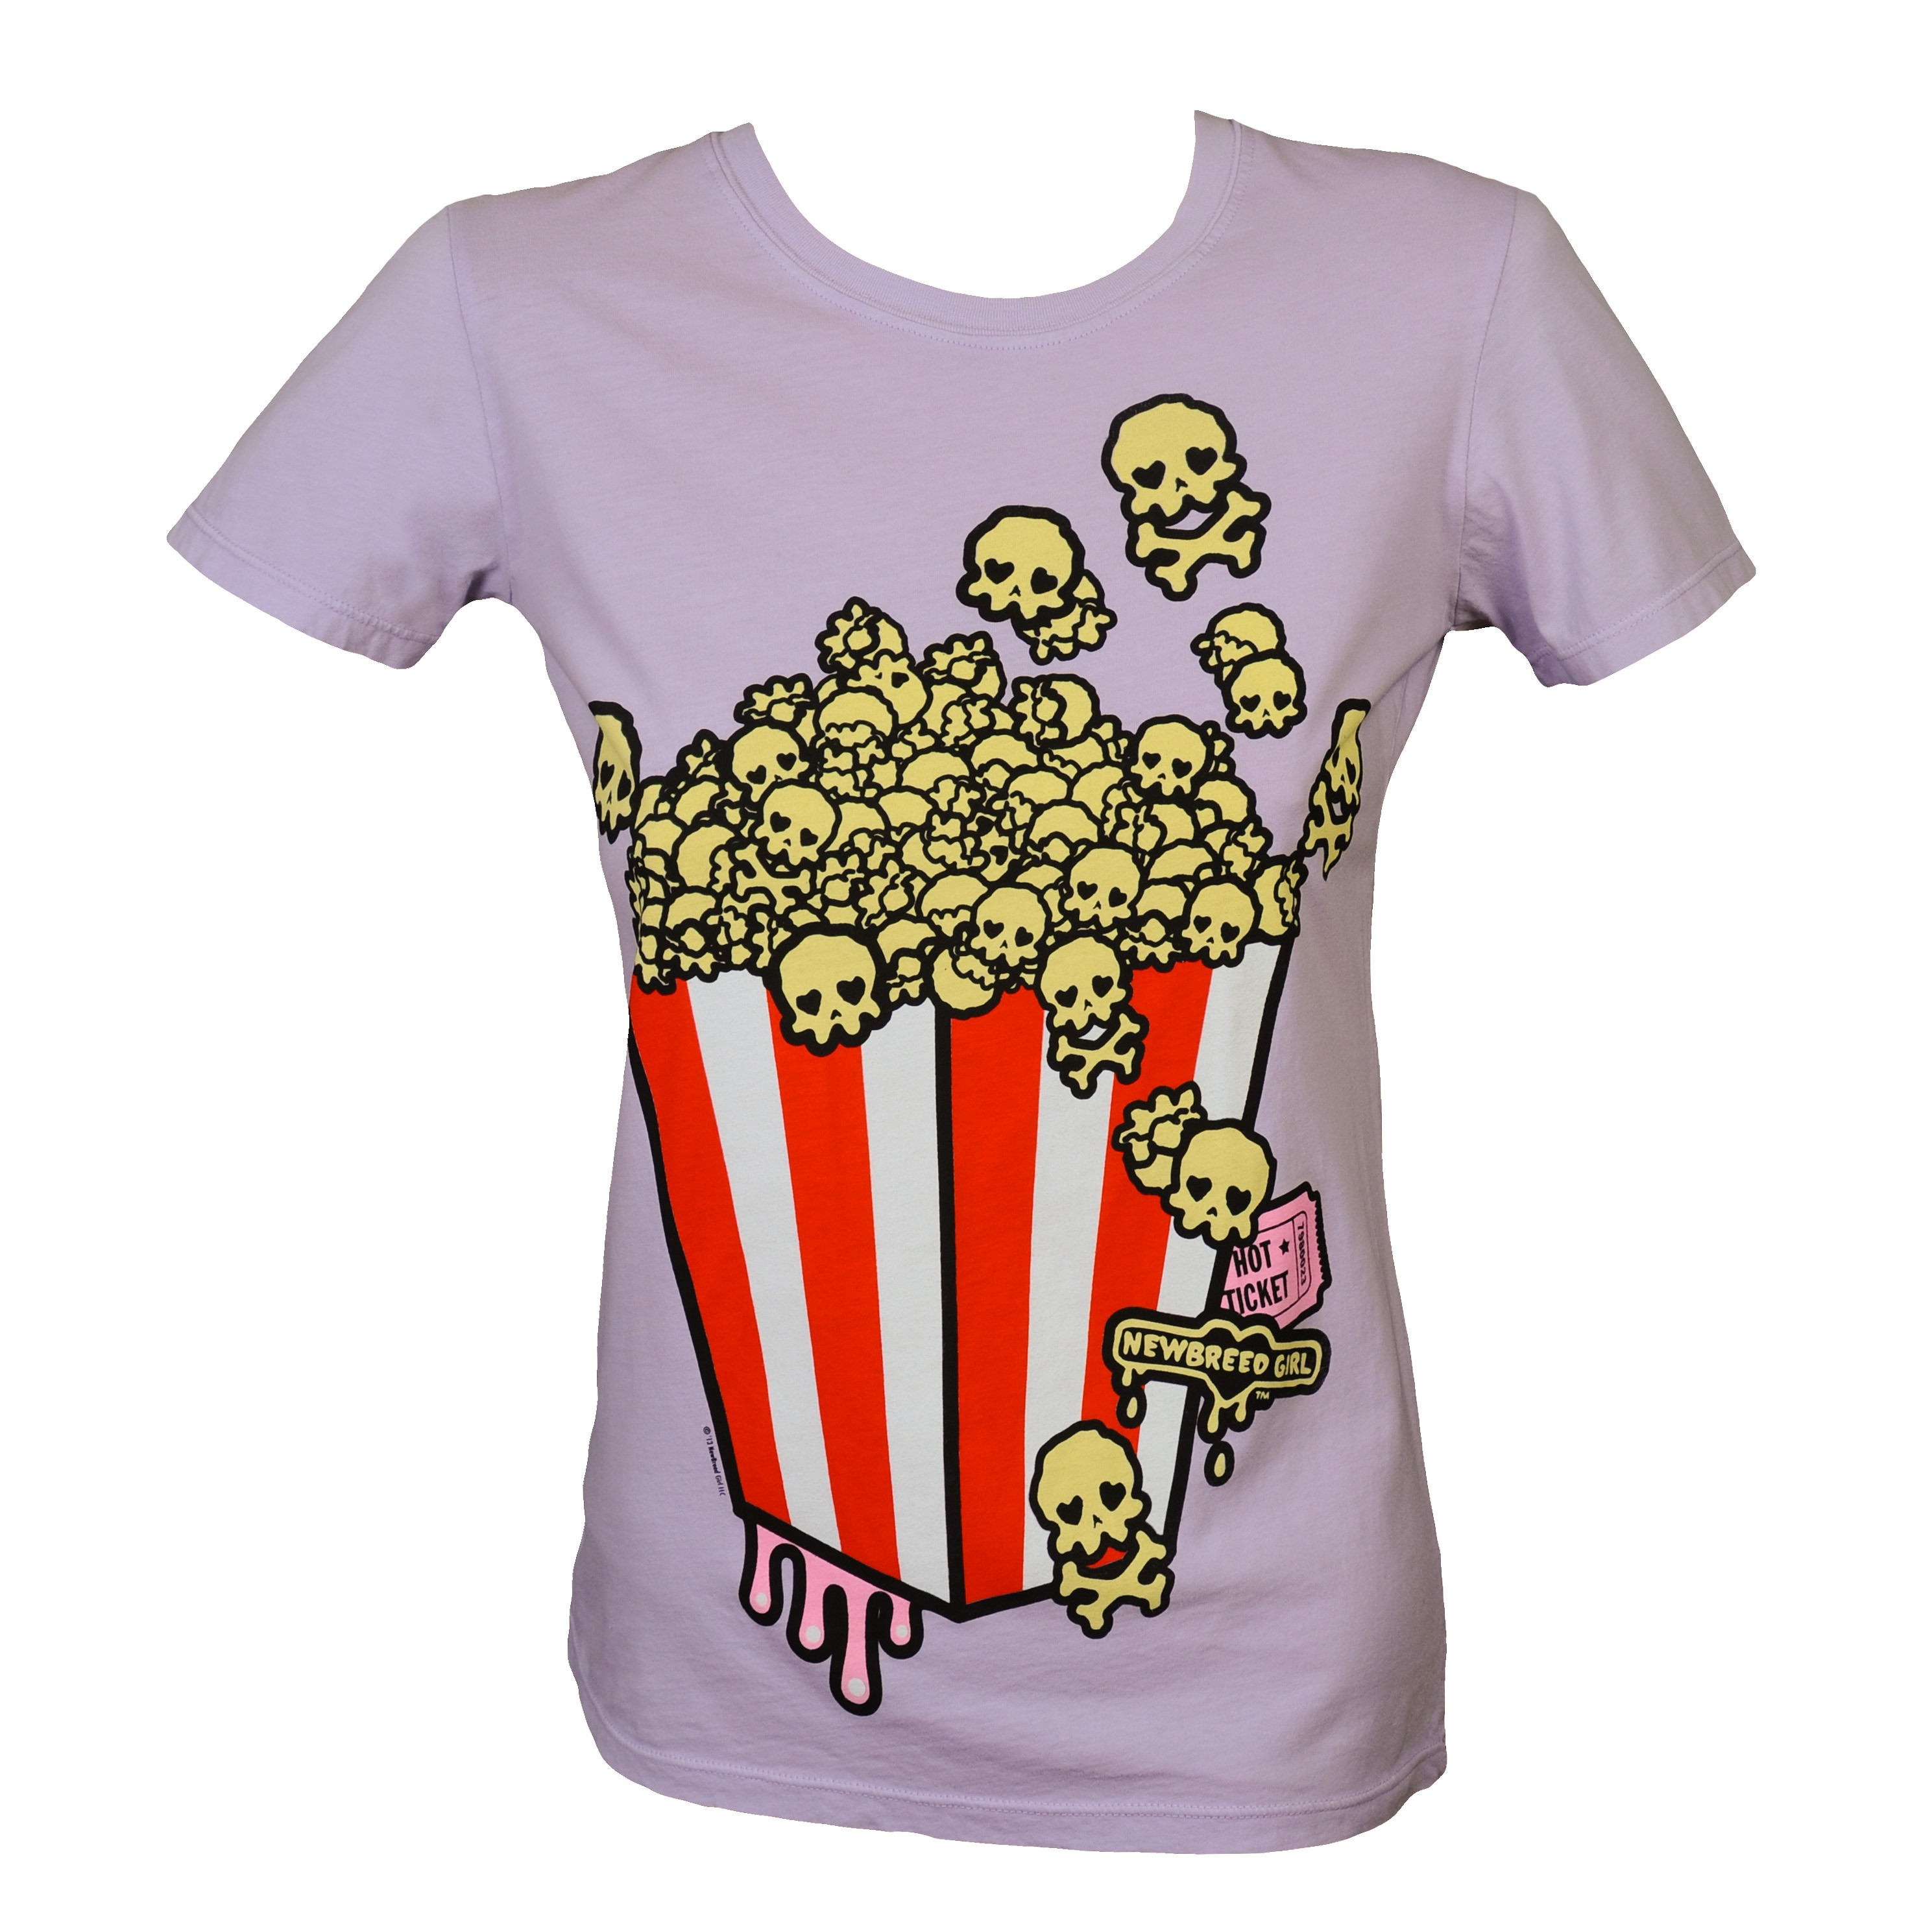 Newbreed Girl Skullycorn Tee- SUPER FUN DESIGN!